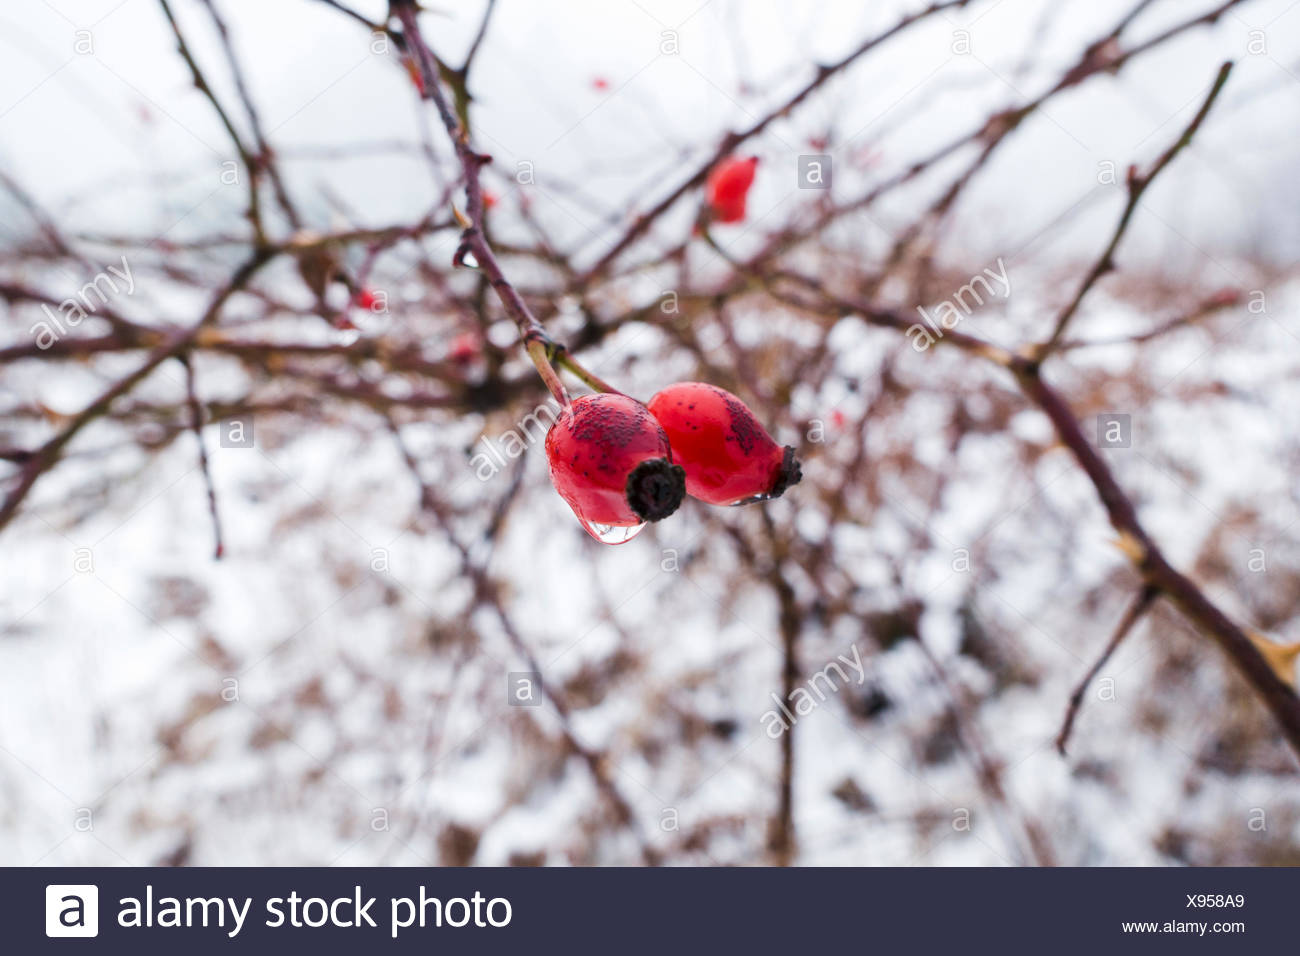 Twig, rose hips, snow, - Stock Image